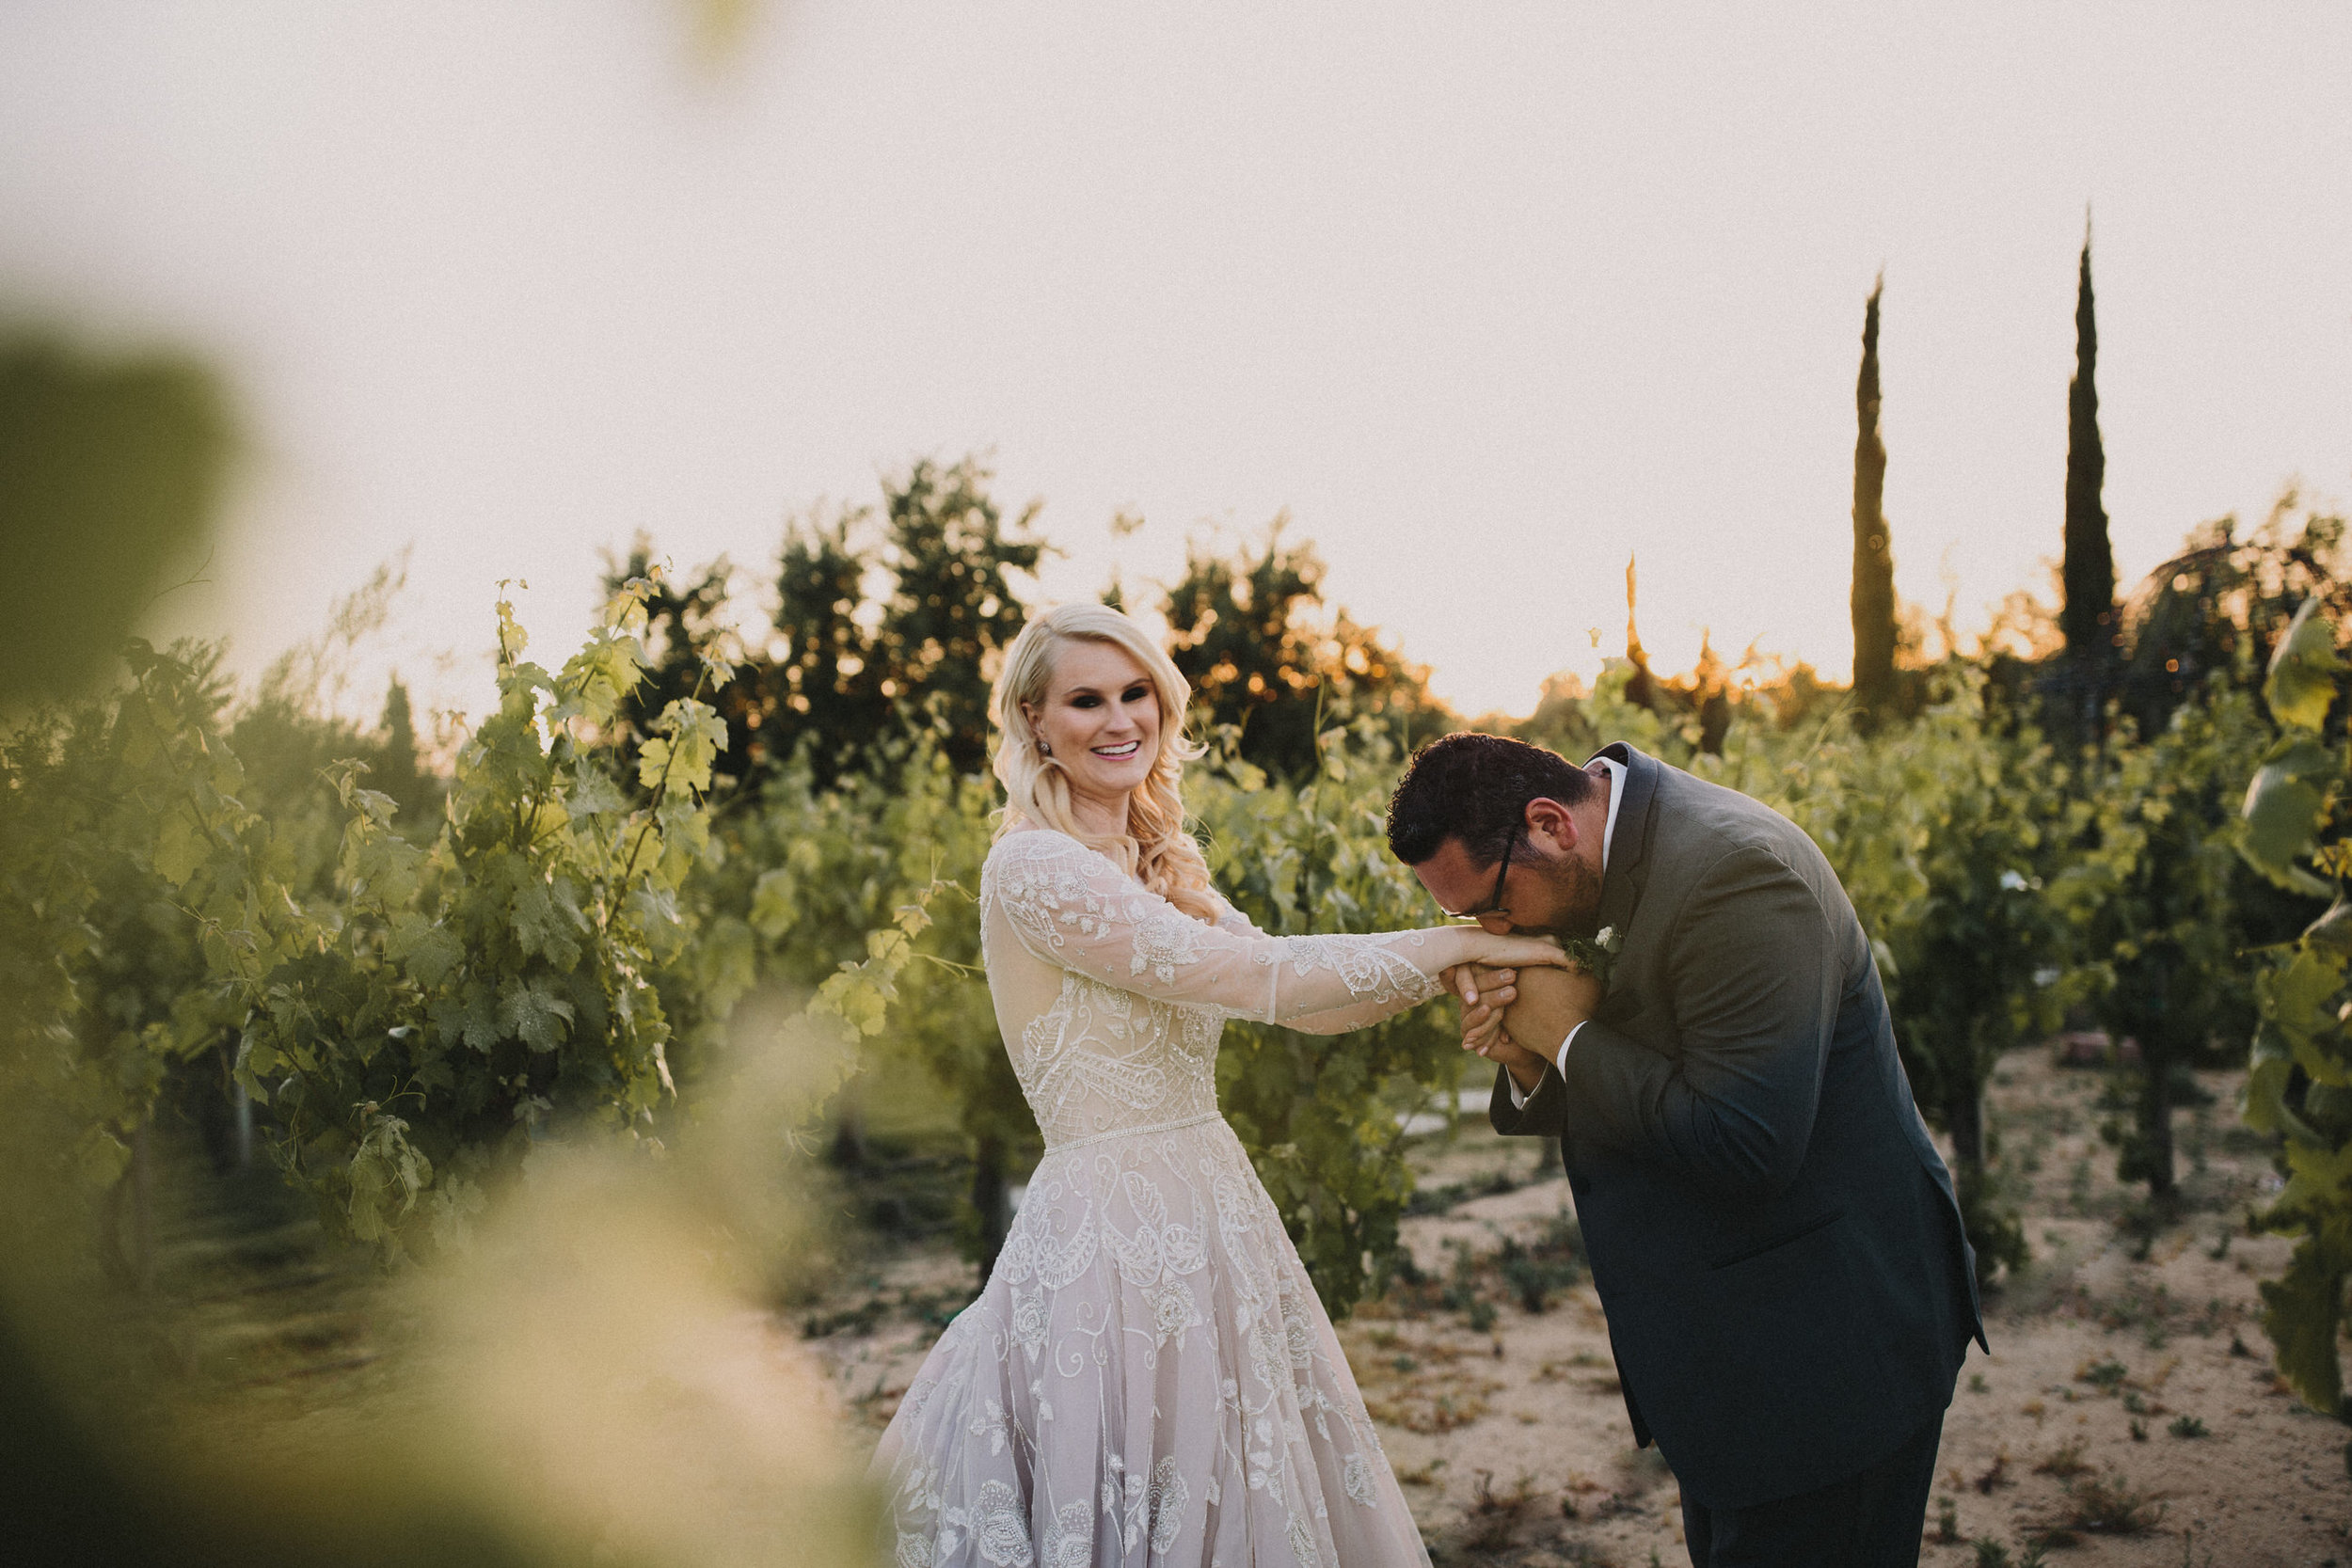 Stephanie + Charles - Mount Palomar Winery Wedding-46.jpg